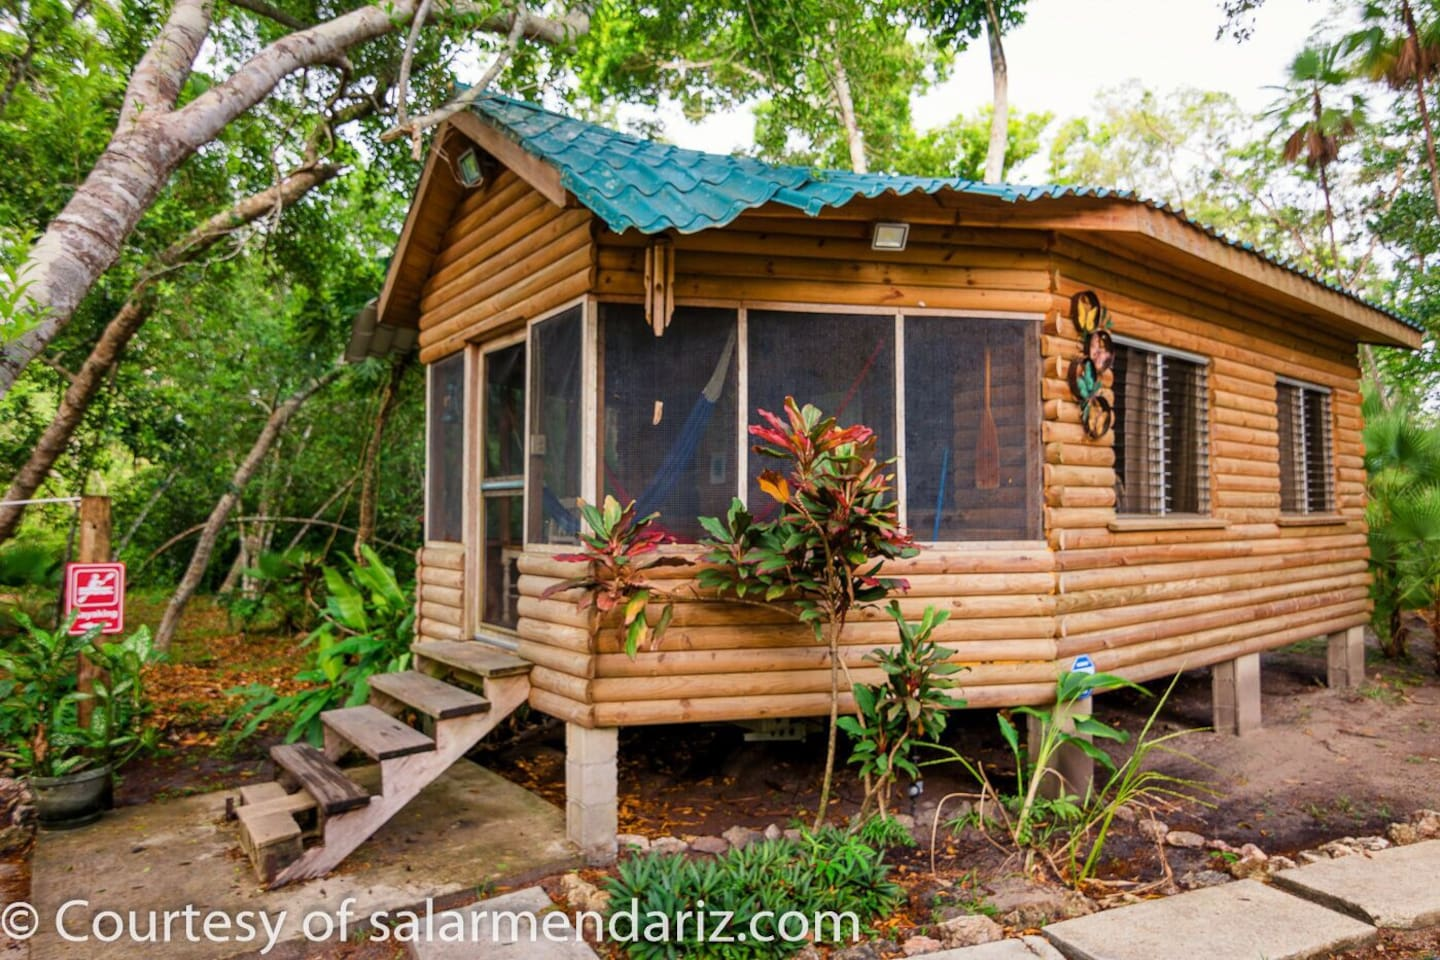 Welcome to the Log Cabin Eco Monkey Reserve .